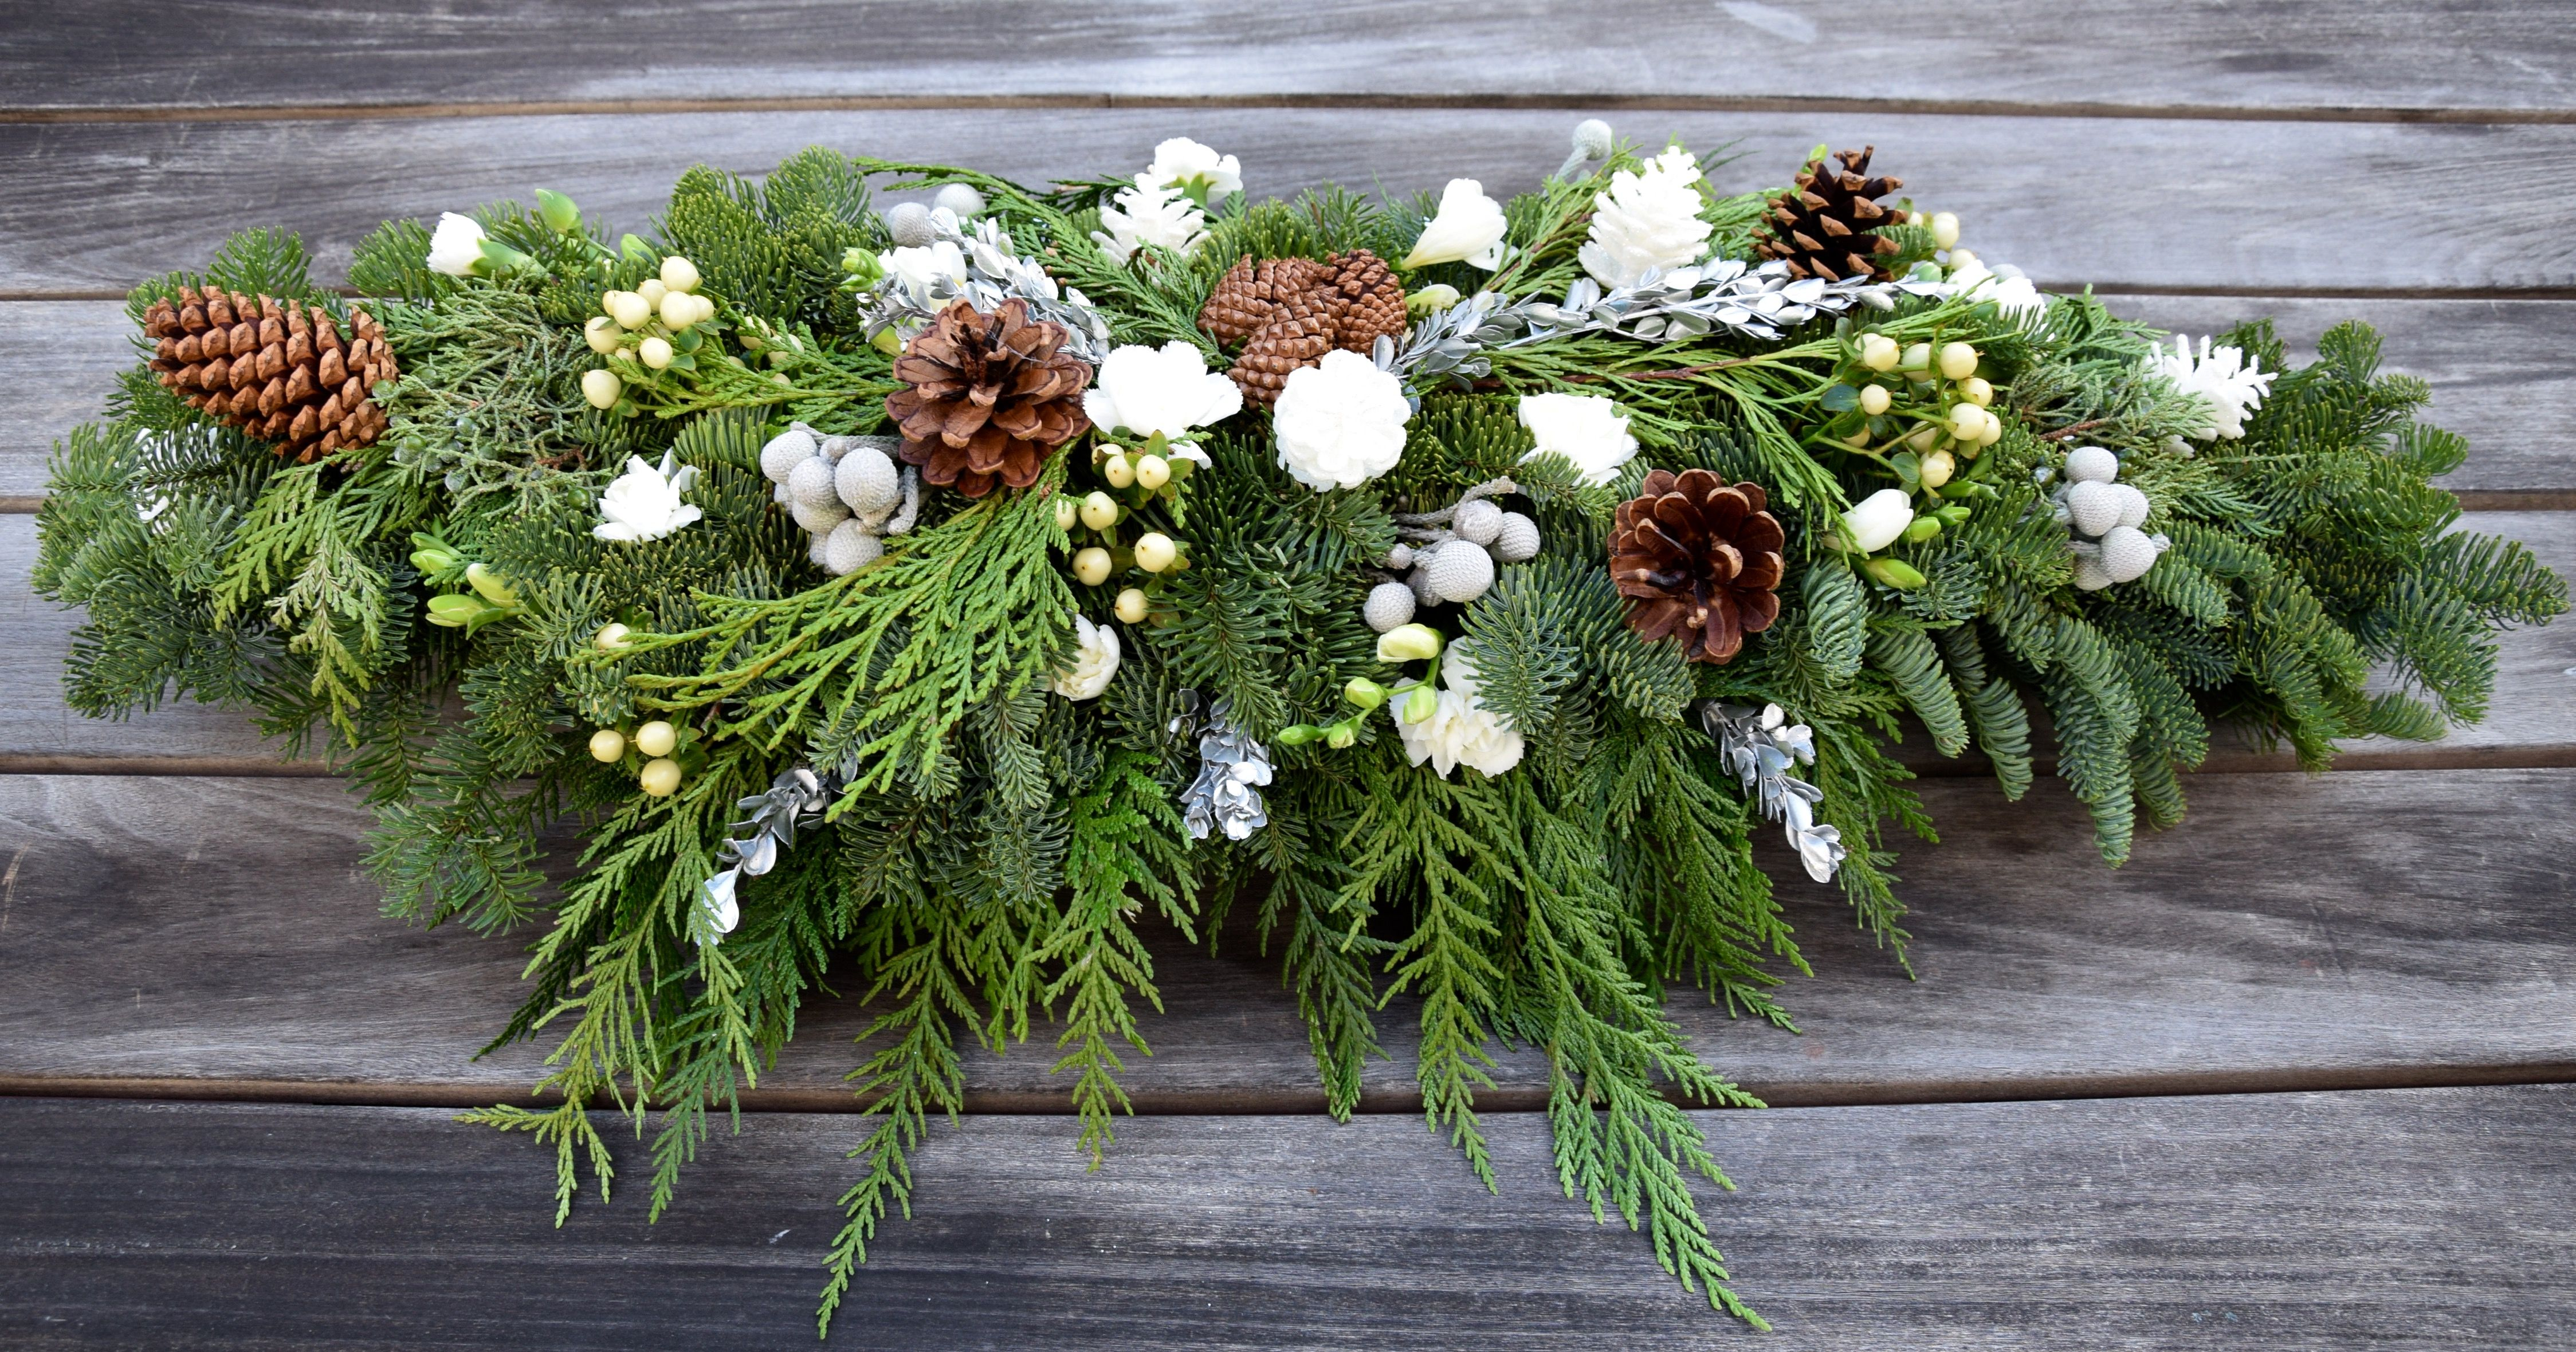 Unique Long Table Centerpiece For Christmas With Winter Greens Silk Whi Christmas Floral Arrangements Christmas Flower Arrangements Fresh Flowers Arrangements